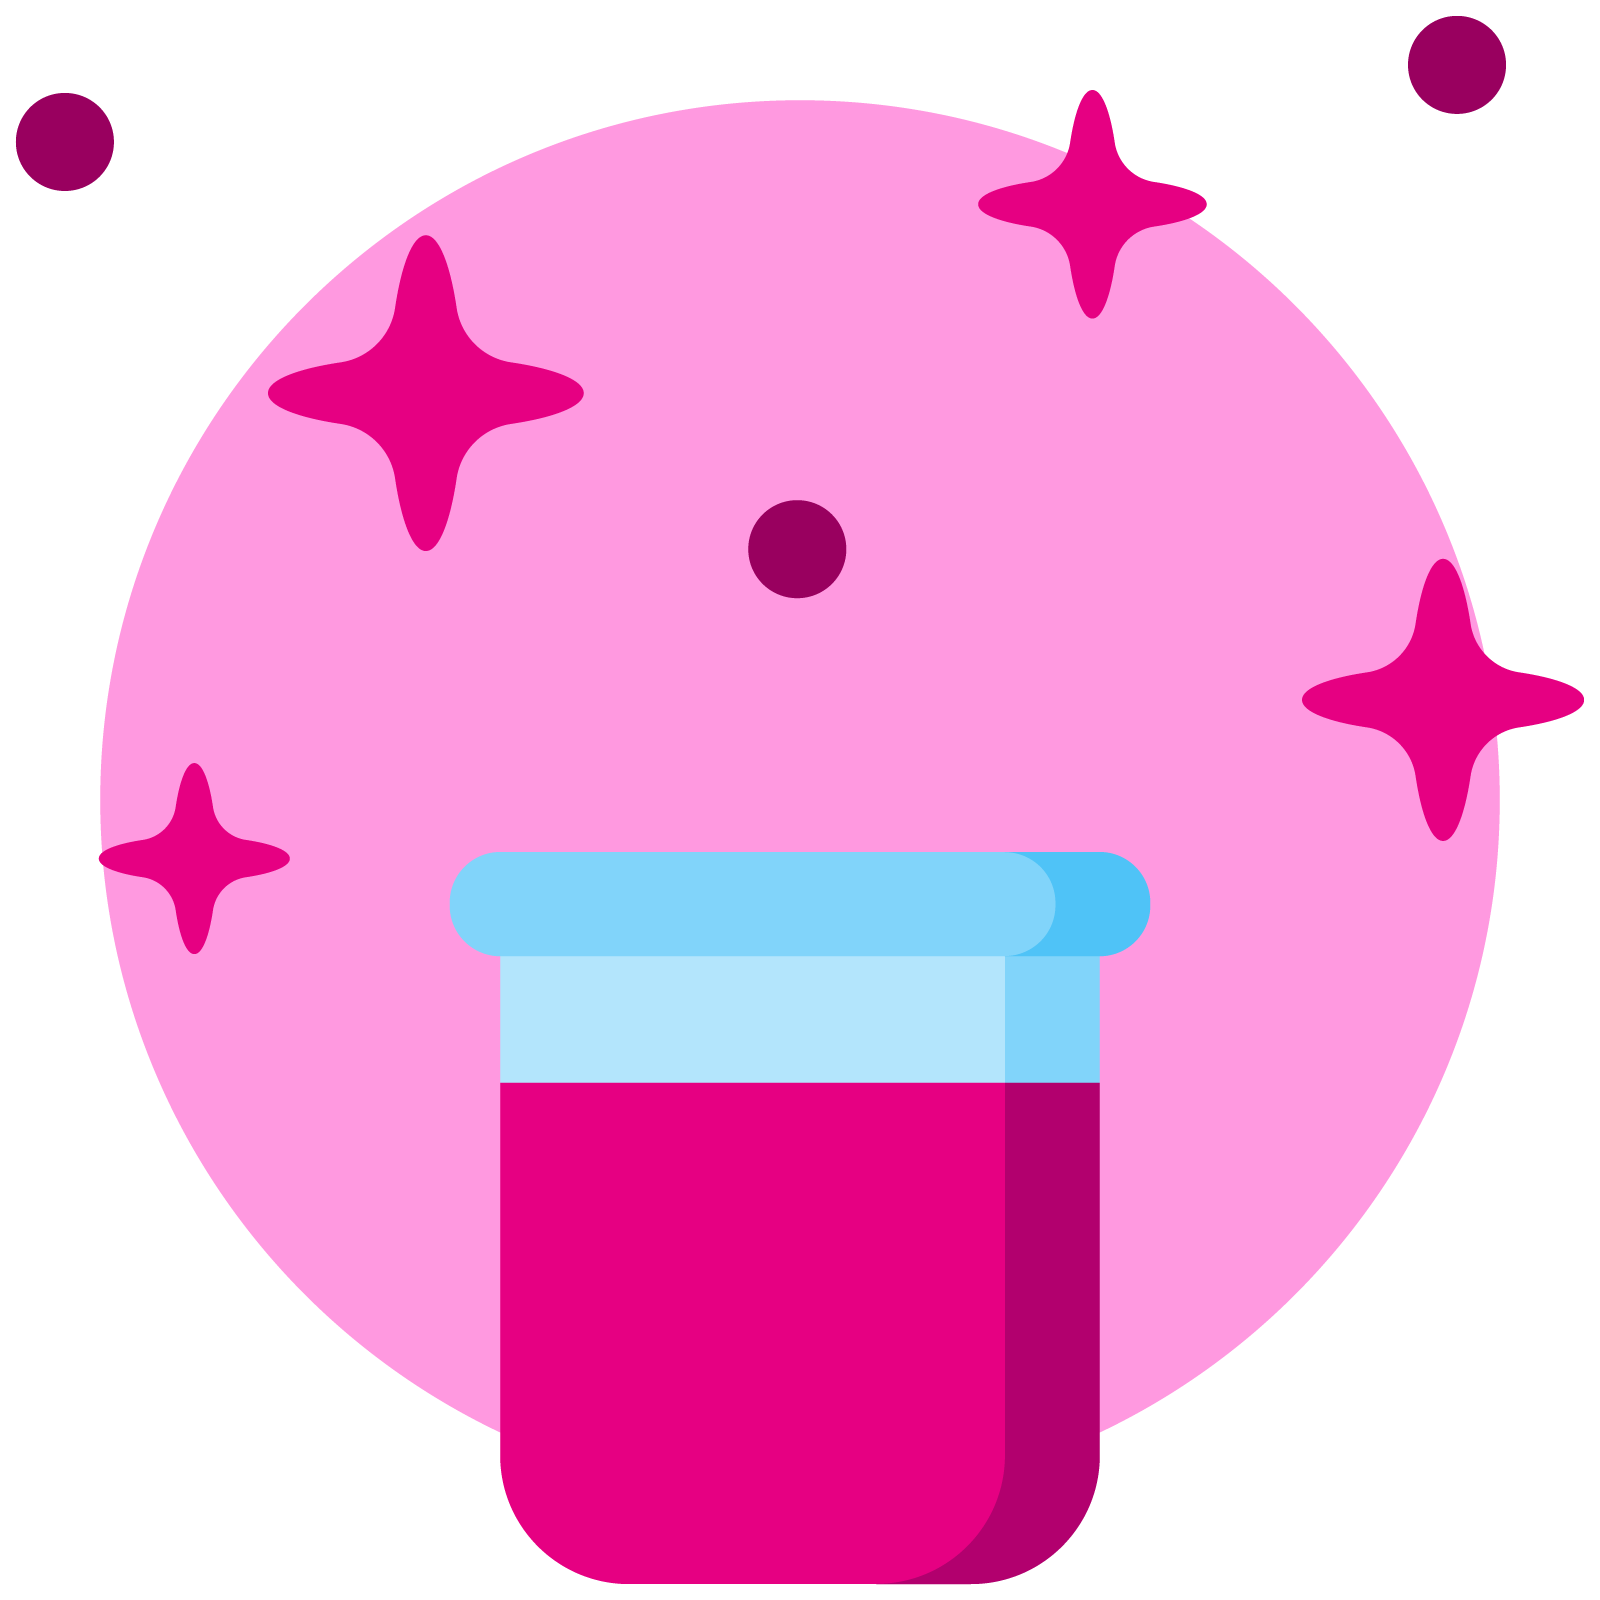 Icon of a sparkly jar of glitter